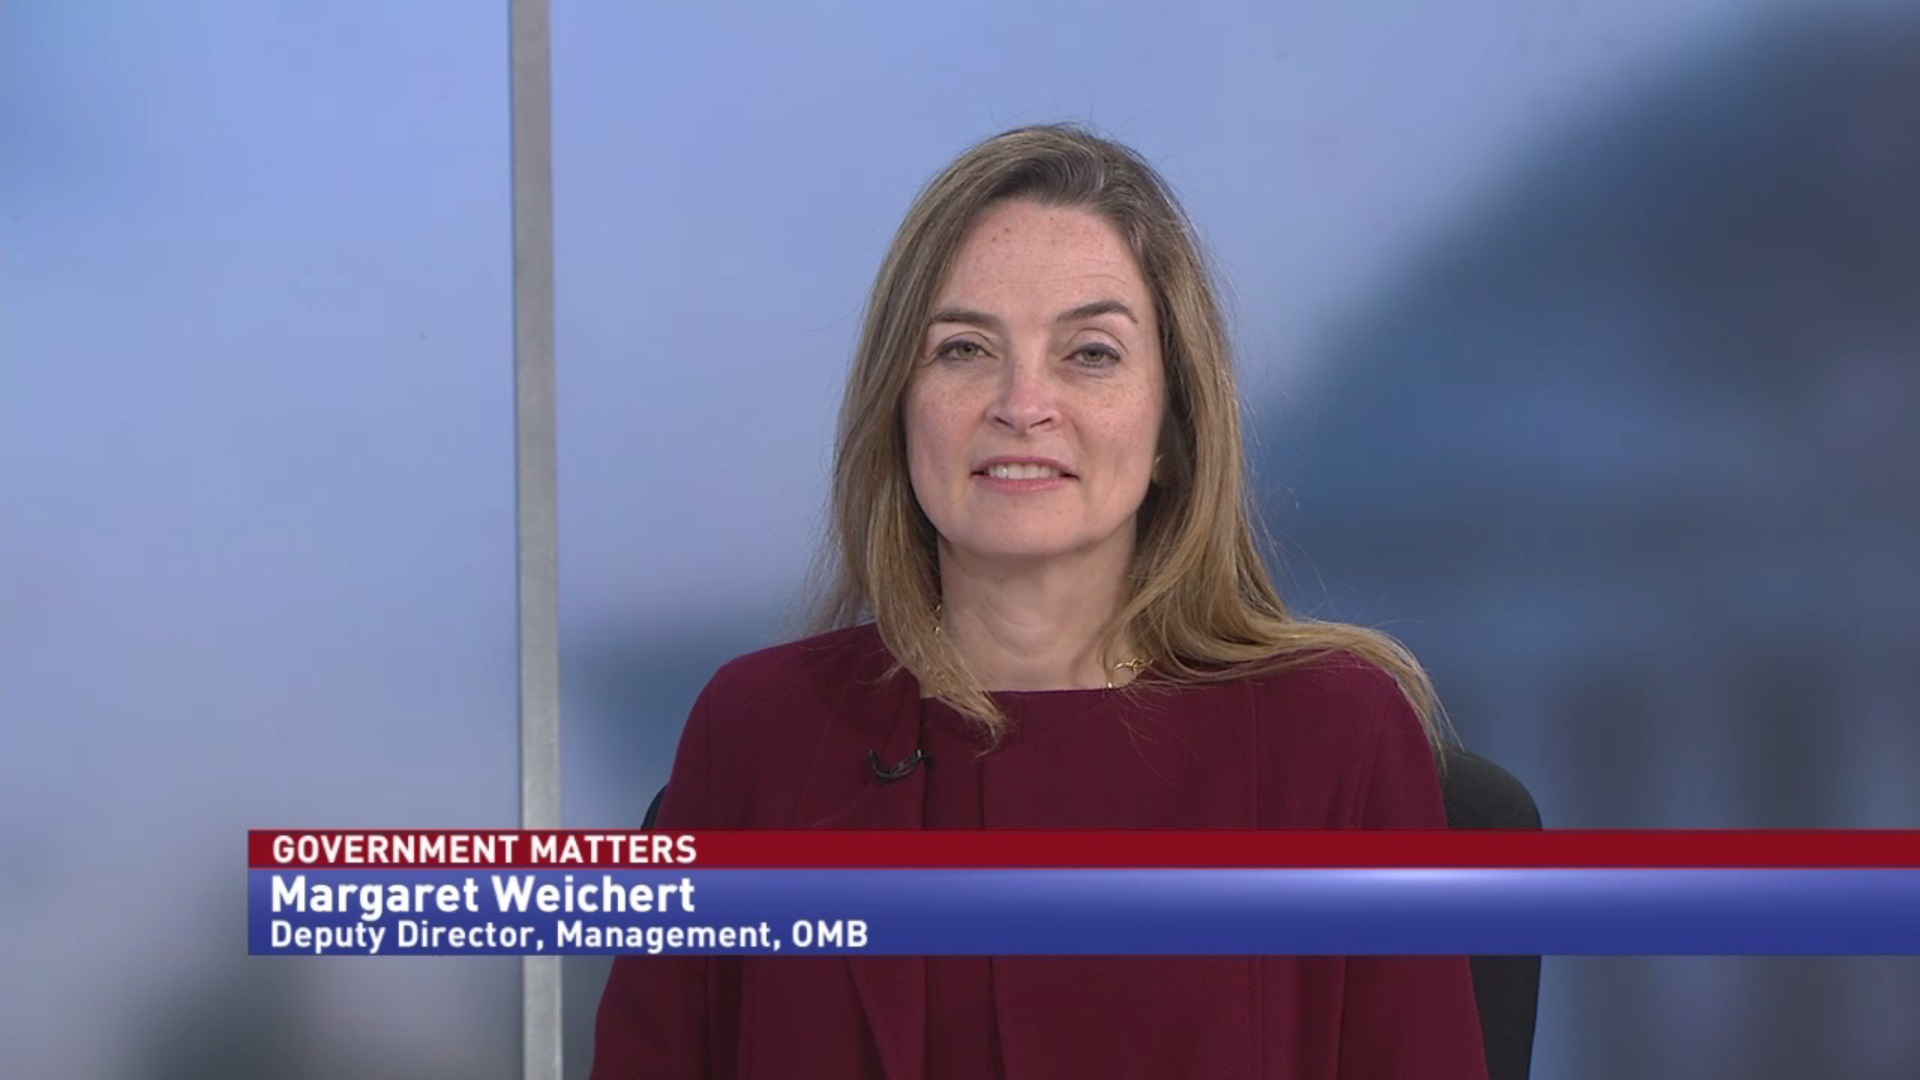 One-on-one with OMB Deputy Director for Management & Acting OPM Director Margaret Weichert